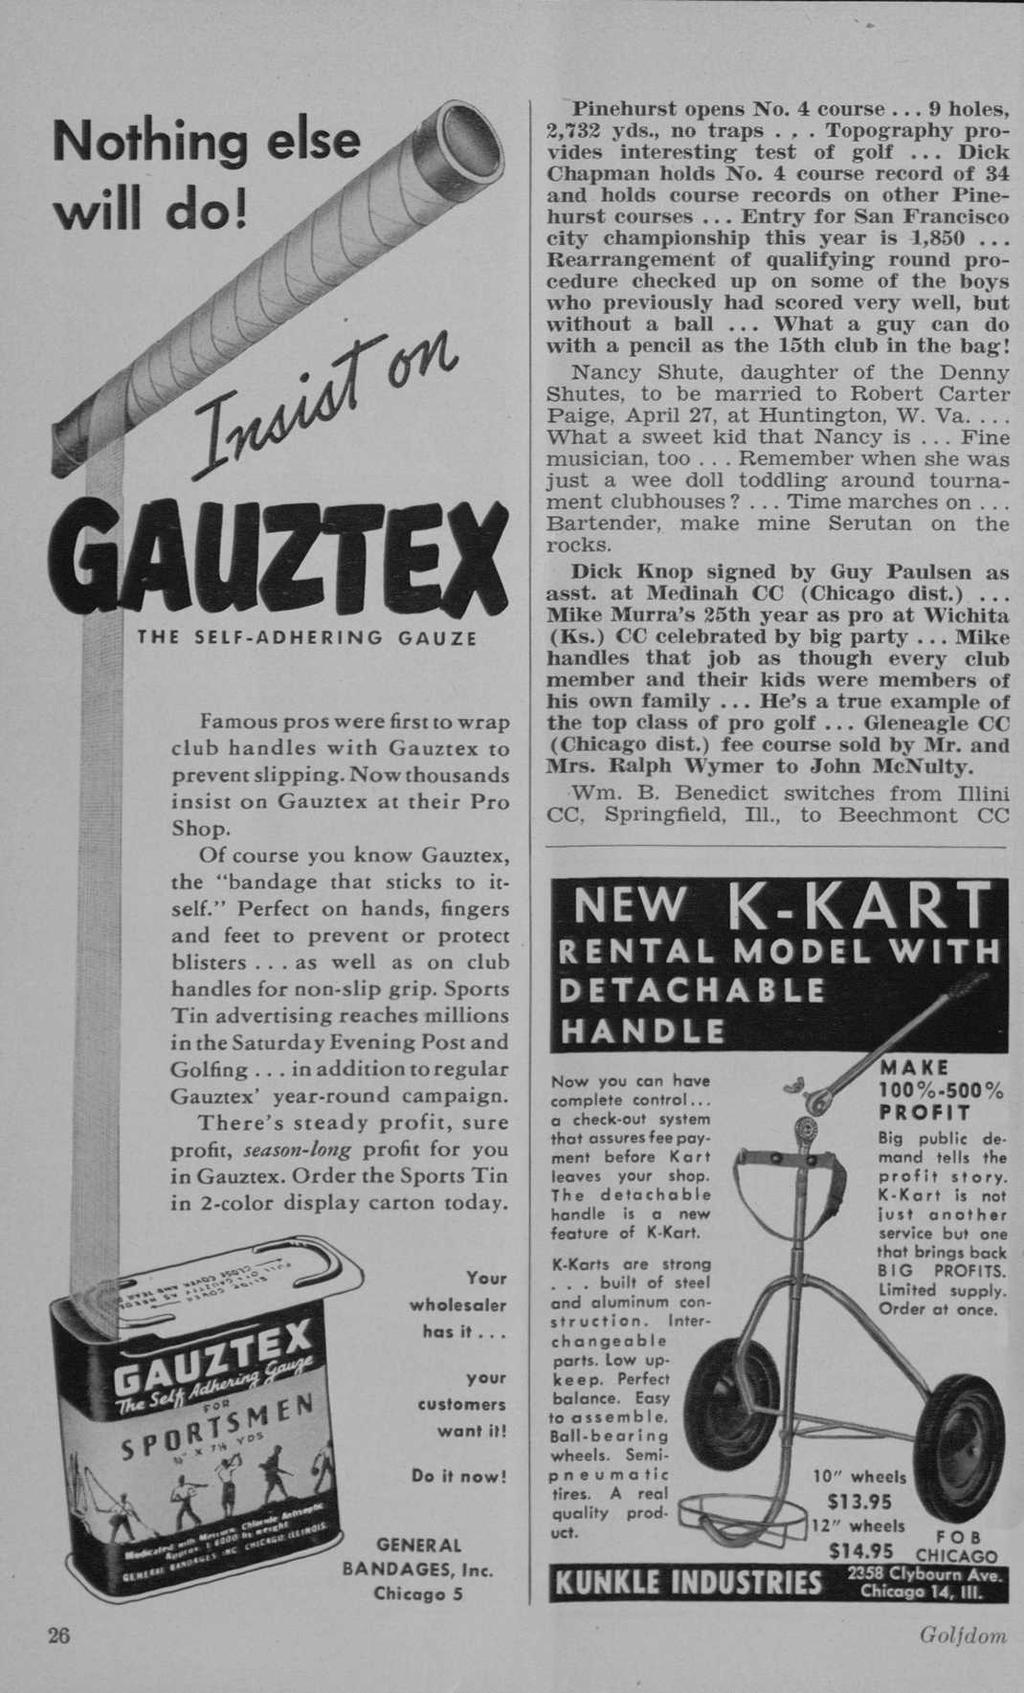 Nothing else will do! GAUZTEX THE SELF-ADHERING GAUZE Famous pros were first to wrap club handles with Gauztex to prevent slipping. Now thousands insist on Gauztex at their Pro Shop.